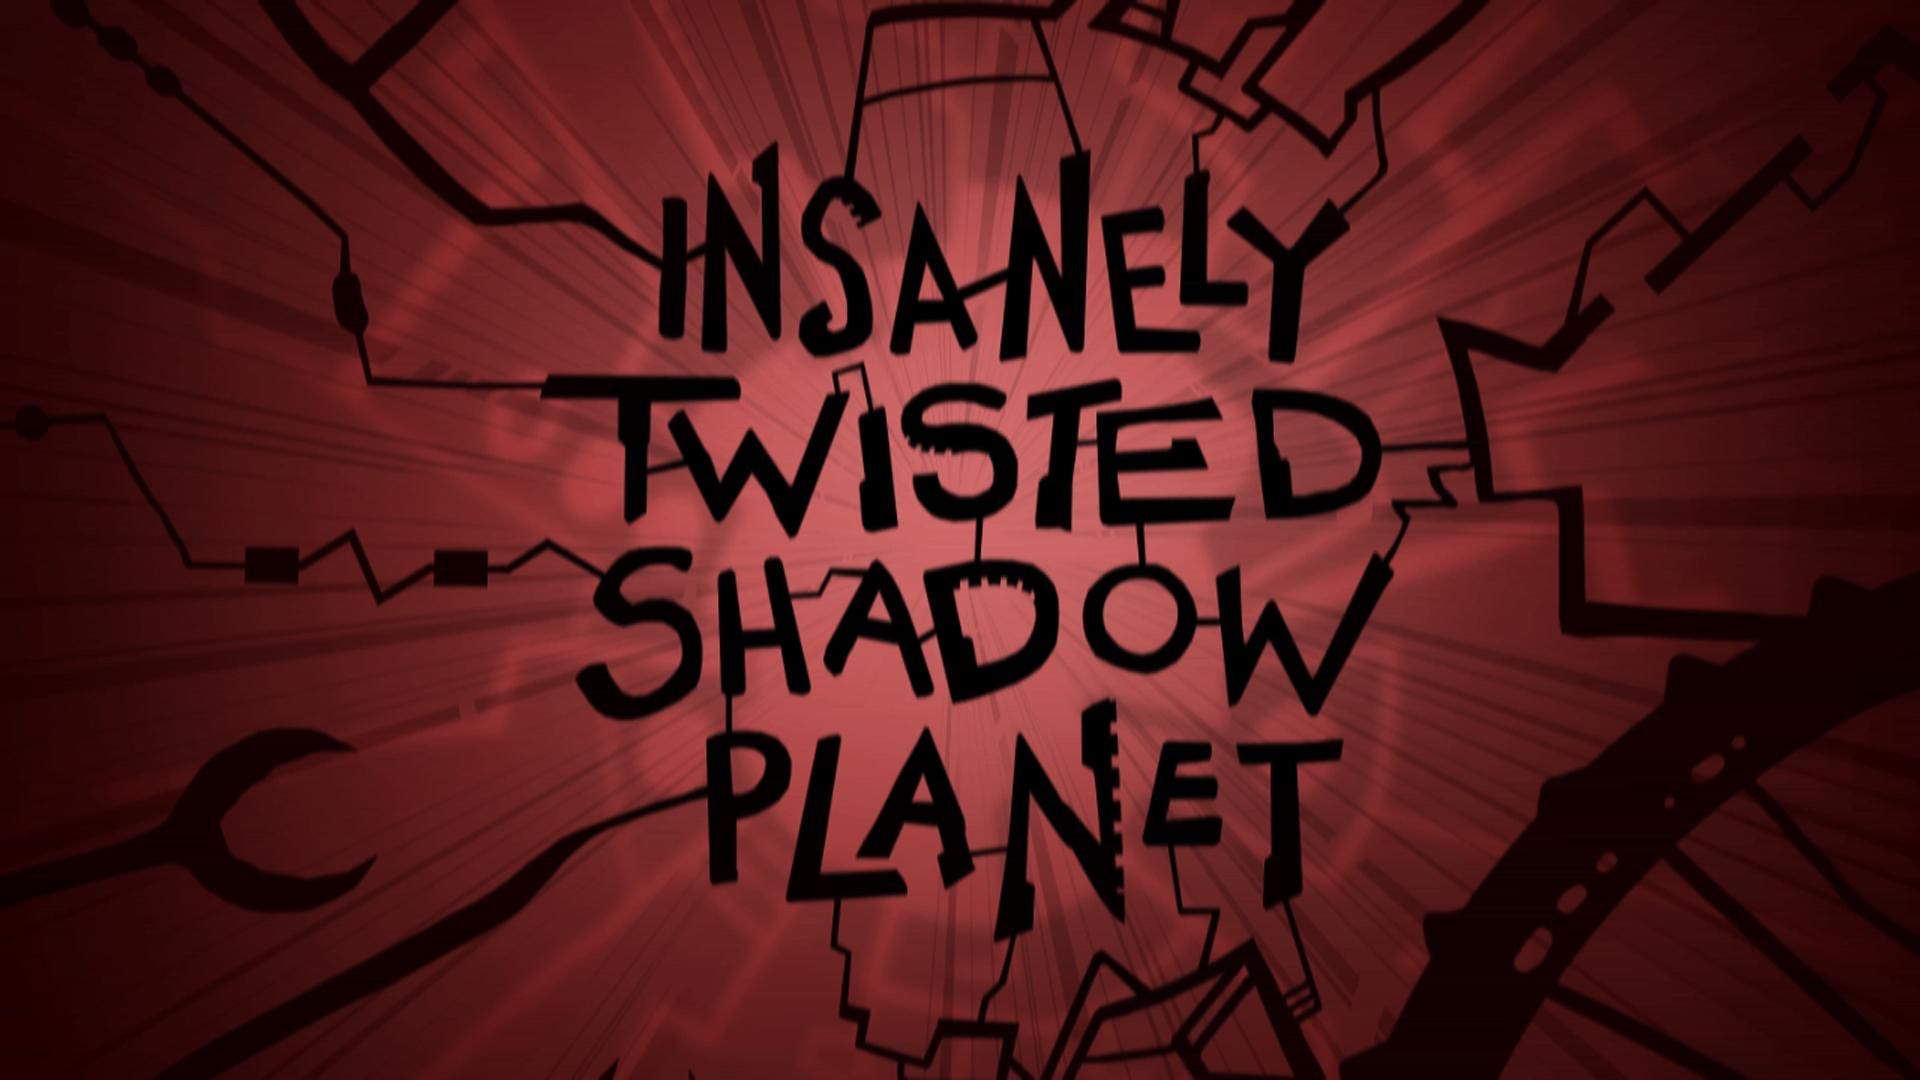 Insanely Twisted Shadow Planet 2010